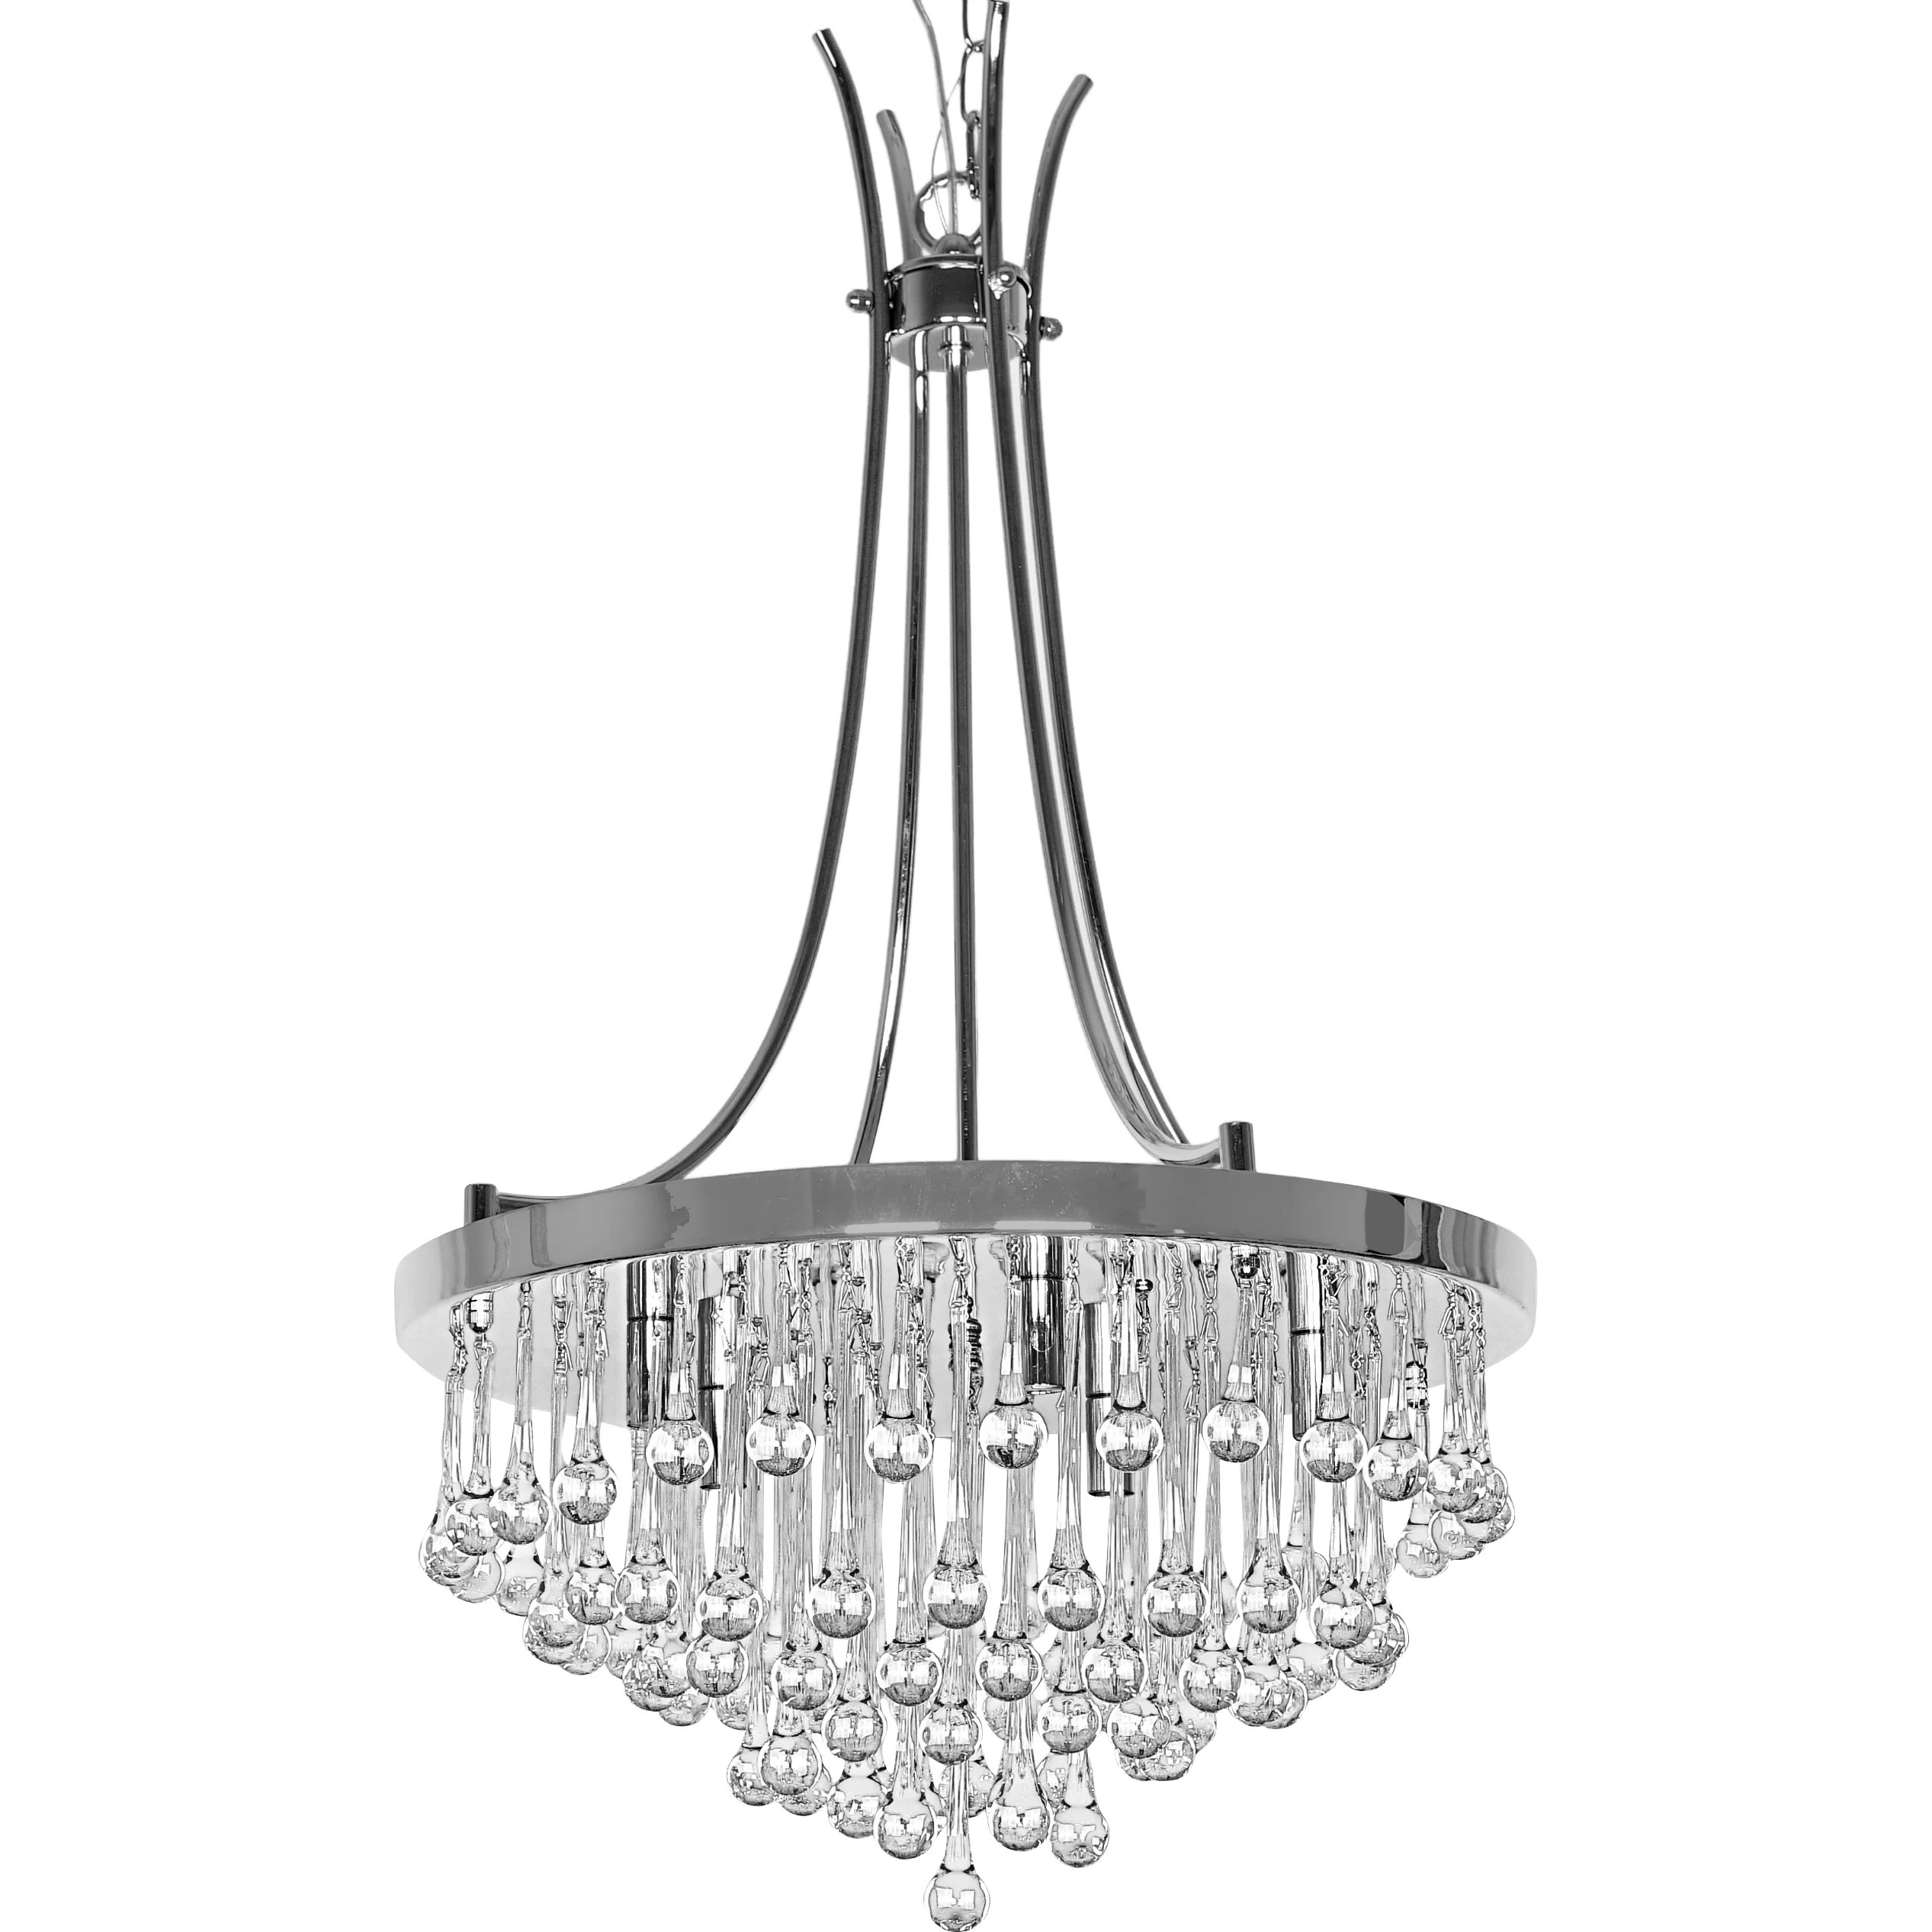 Wellyer Bacchus 5 Light Crystal Chandelier Amp Reviews